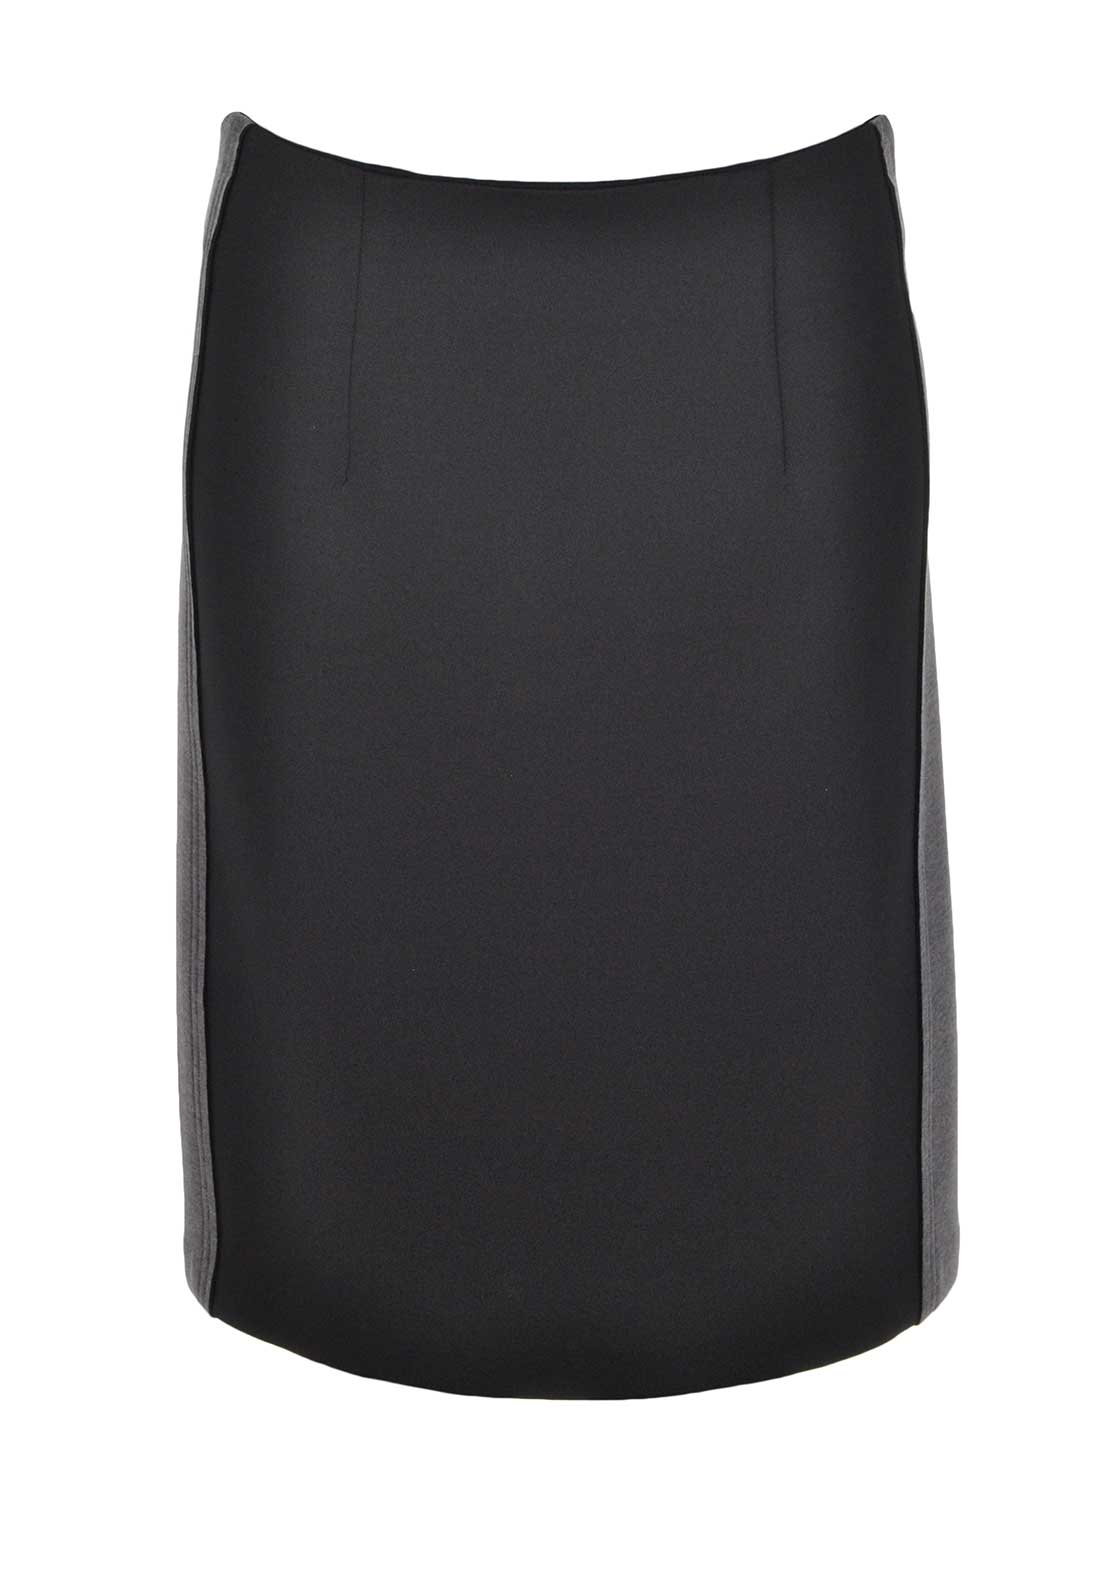 Camelot Colour Block Scuba Pencil Skirt, Black and Grey